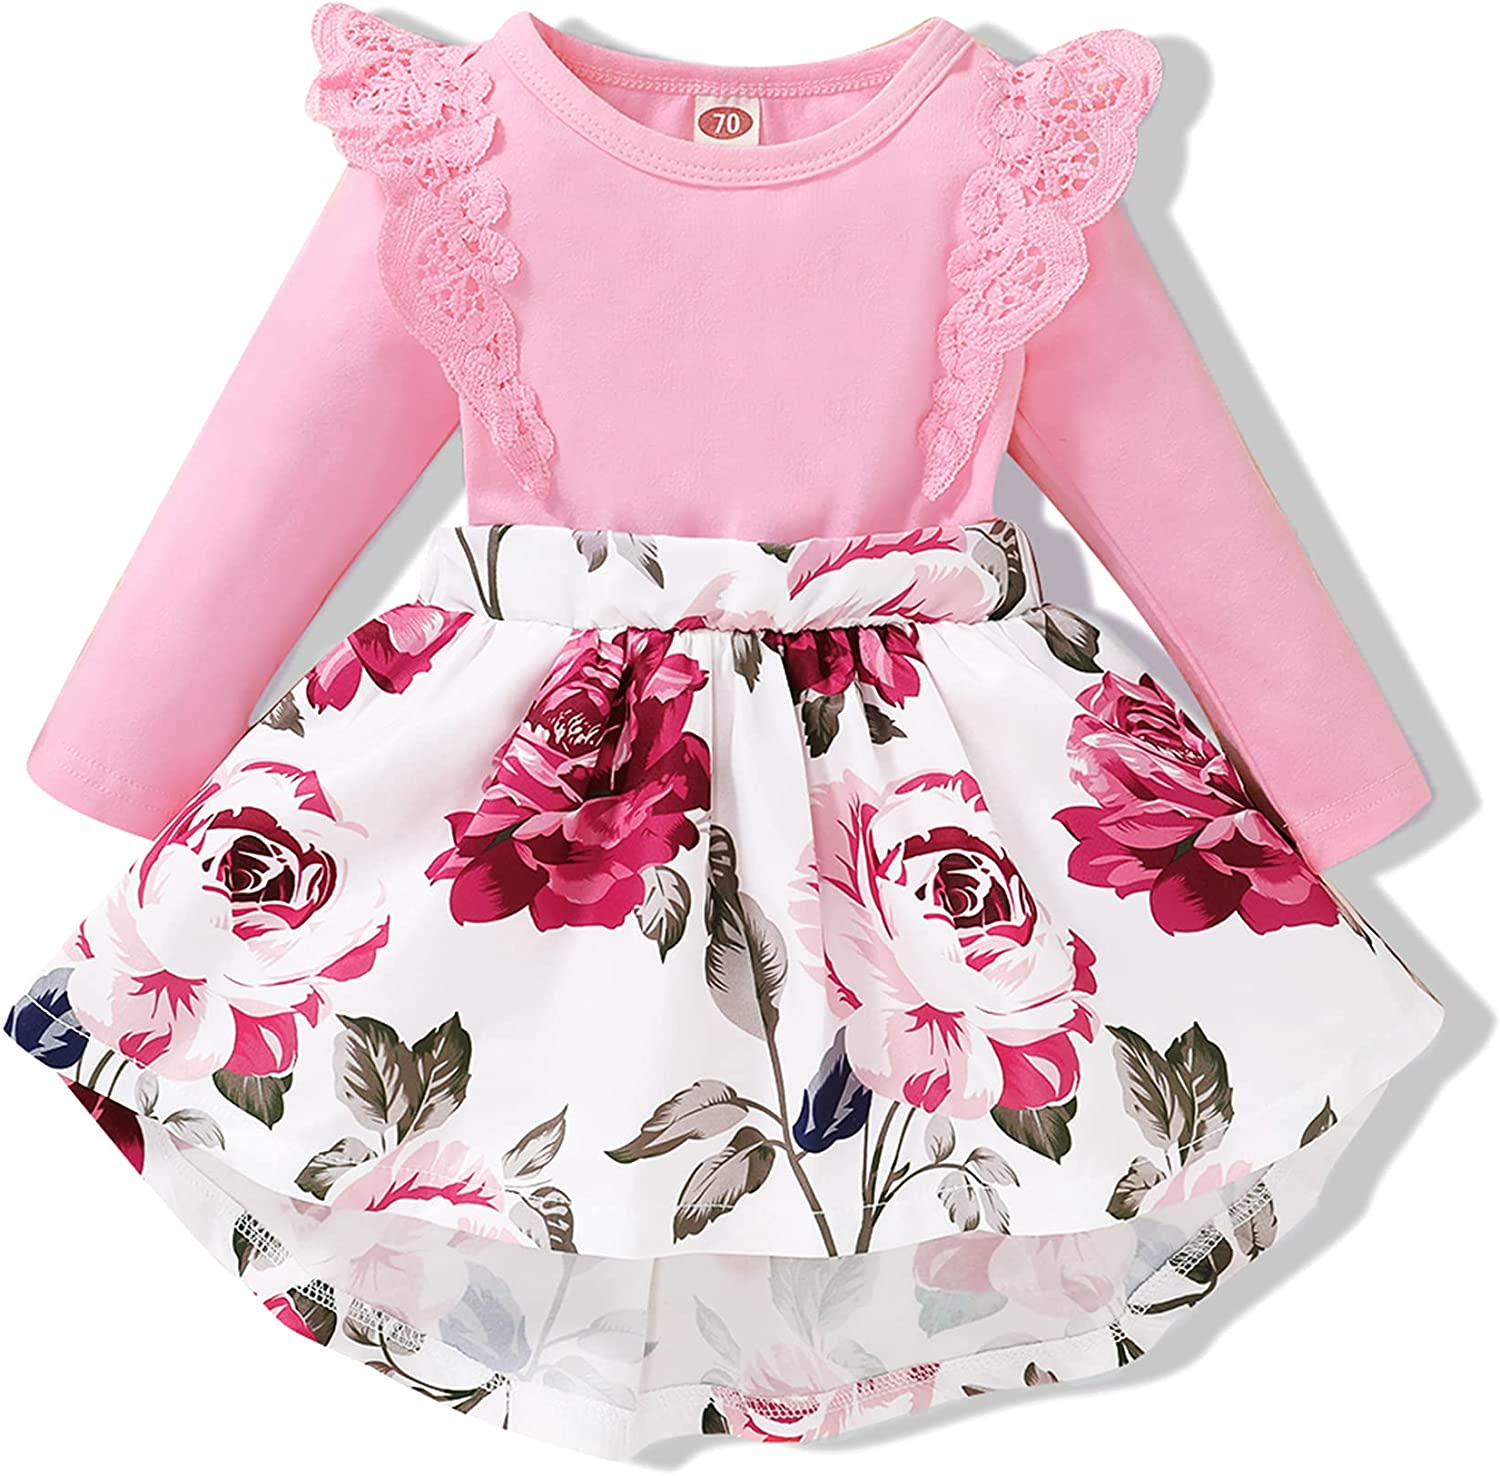 OLLUISNEO Infant Baby Girl Dress Fall Winter Outfits Flower Long Sleeve Dress for Girls Newbron Baby Girl Clothes